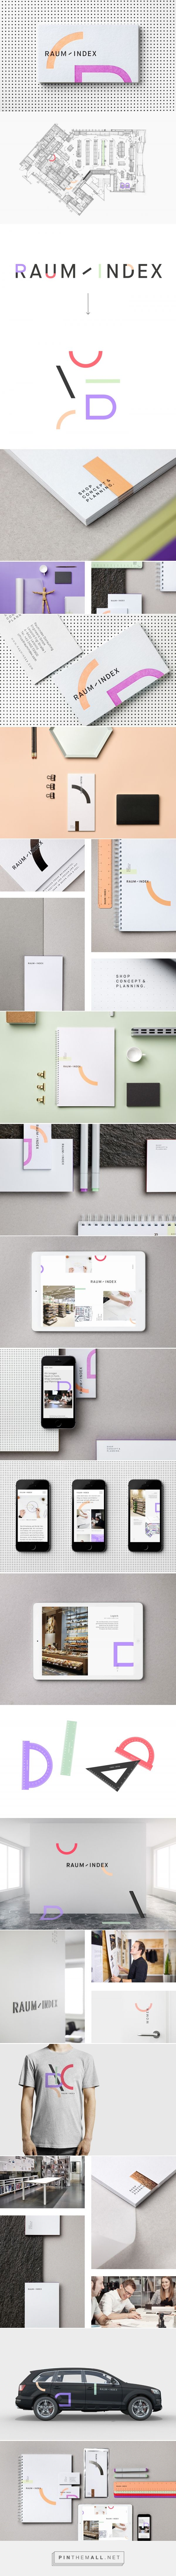 Raumindex - Branding on Behance... - a grouped images picture - Pin Them All